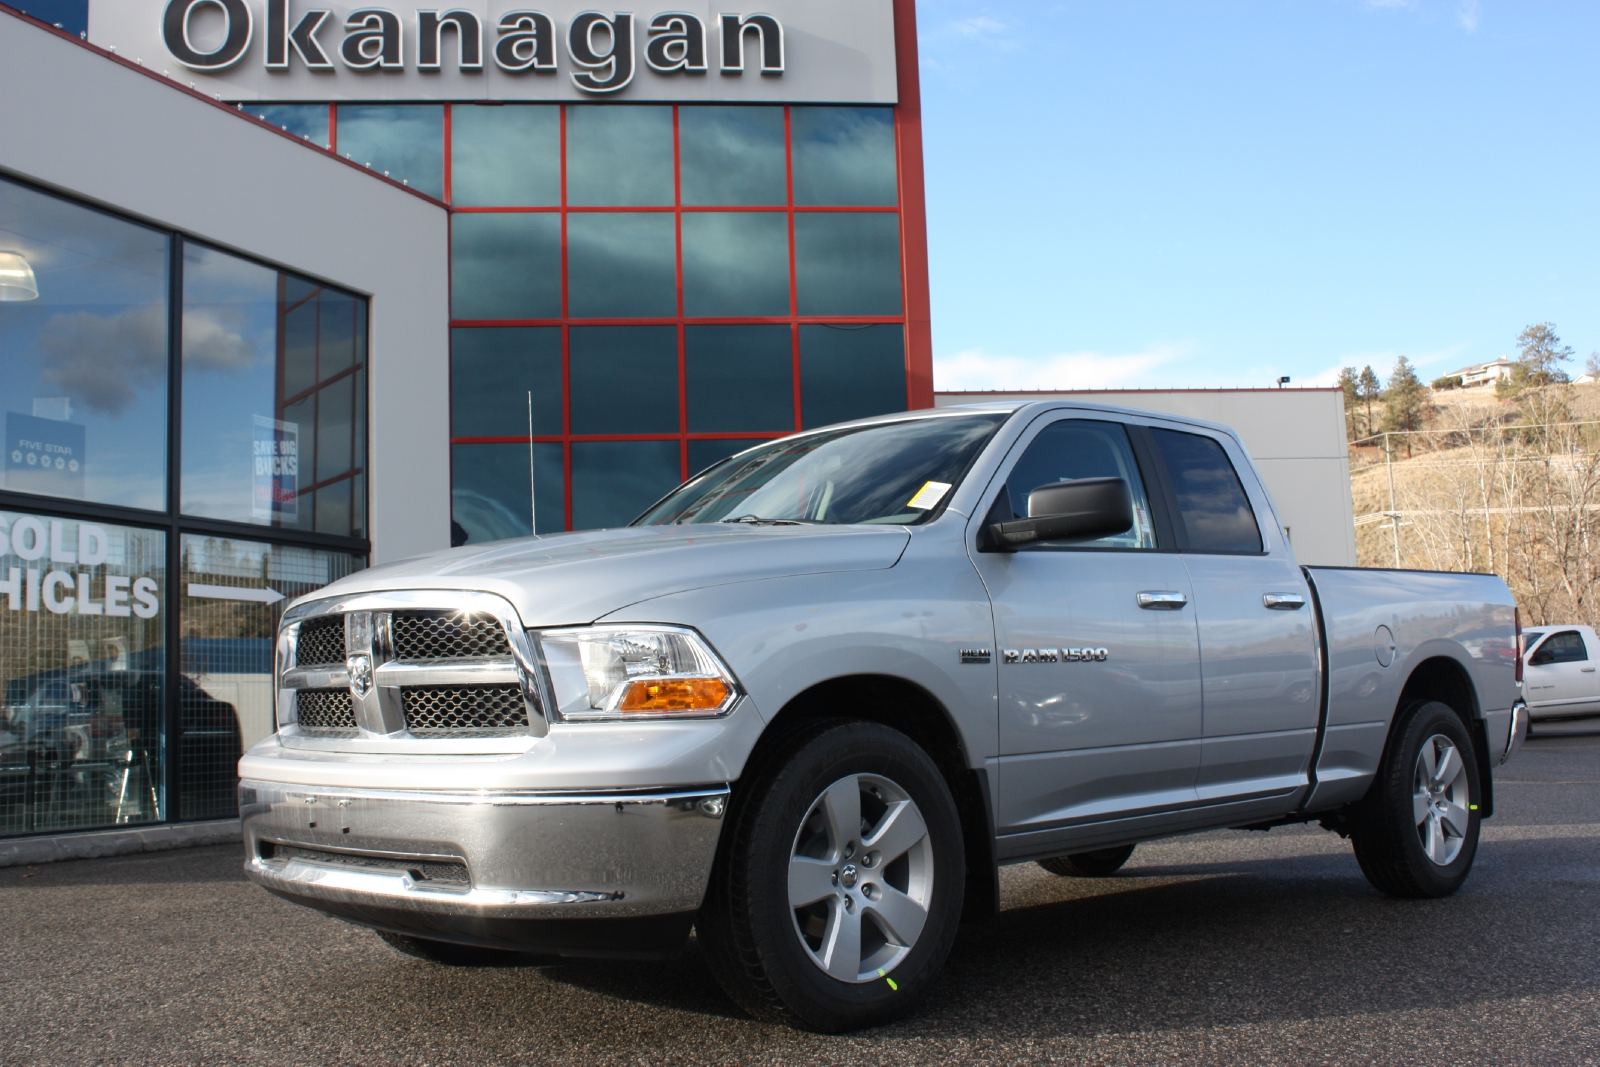 Dodge ram 1500 rt photos reviews news specs buy car Dodge ram motors